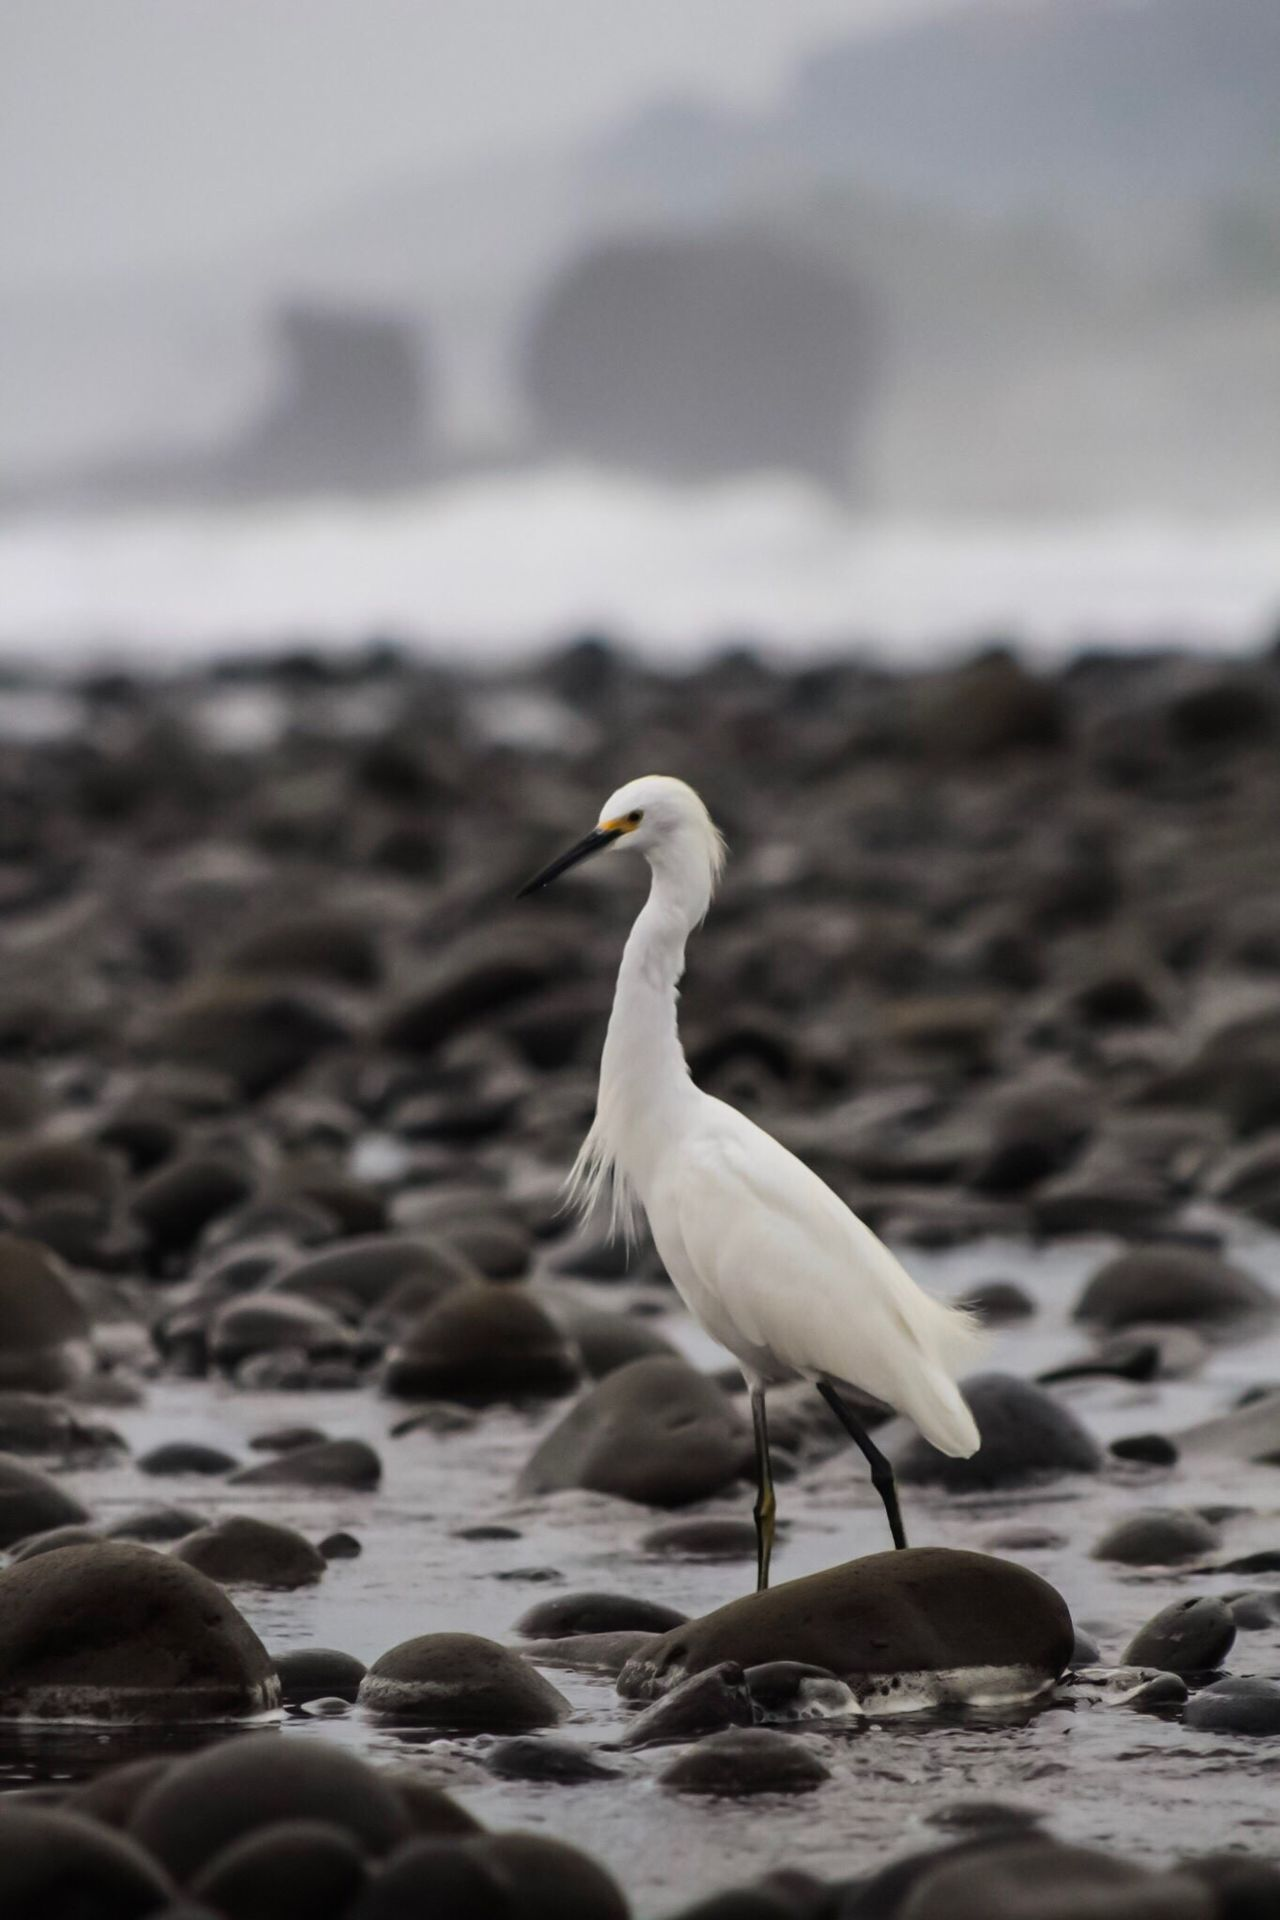 Bird Animal Themes Animals In The Wild Beach Focus On Foreground Water El Salvador El Salvador Impresionante Sunrise Nature Sand One Animal Sea Day No People Seagull Outdoors Perching Great Egret Beauty In Nature Crane - Bird Close-up